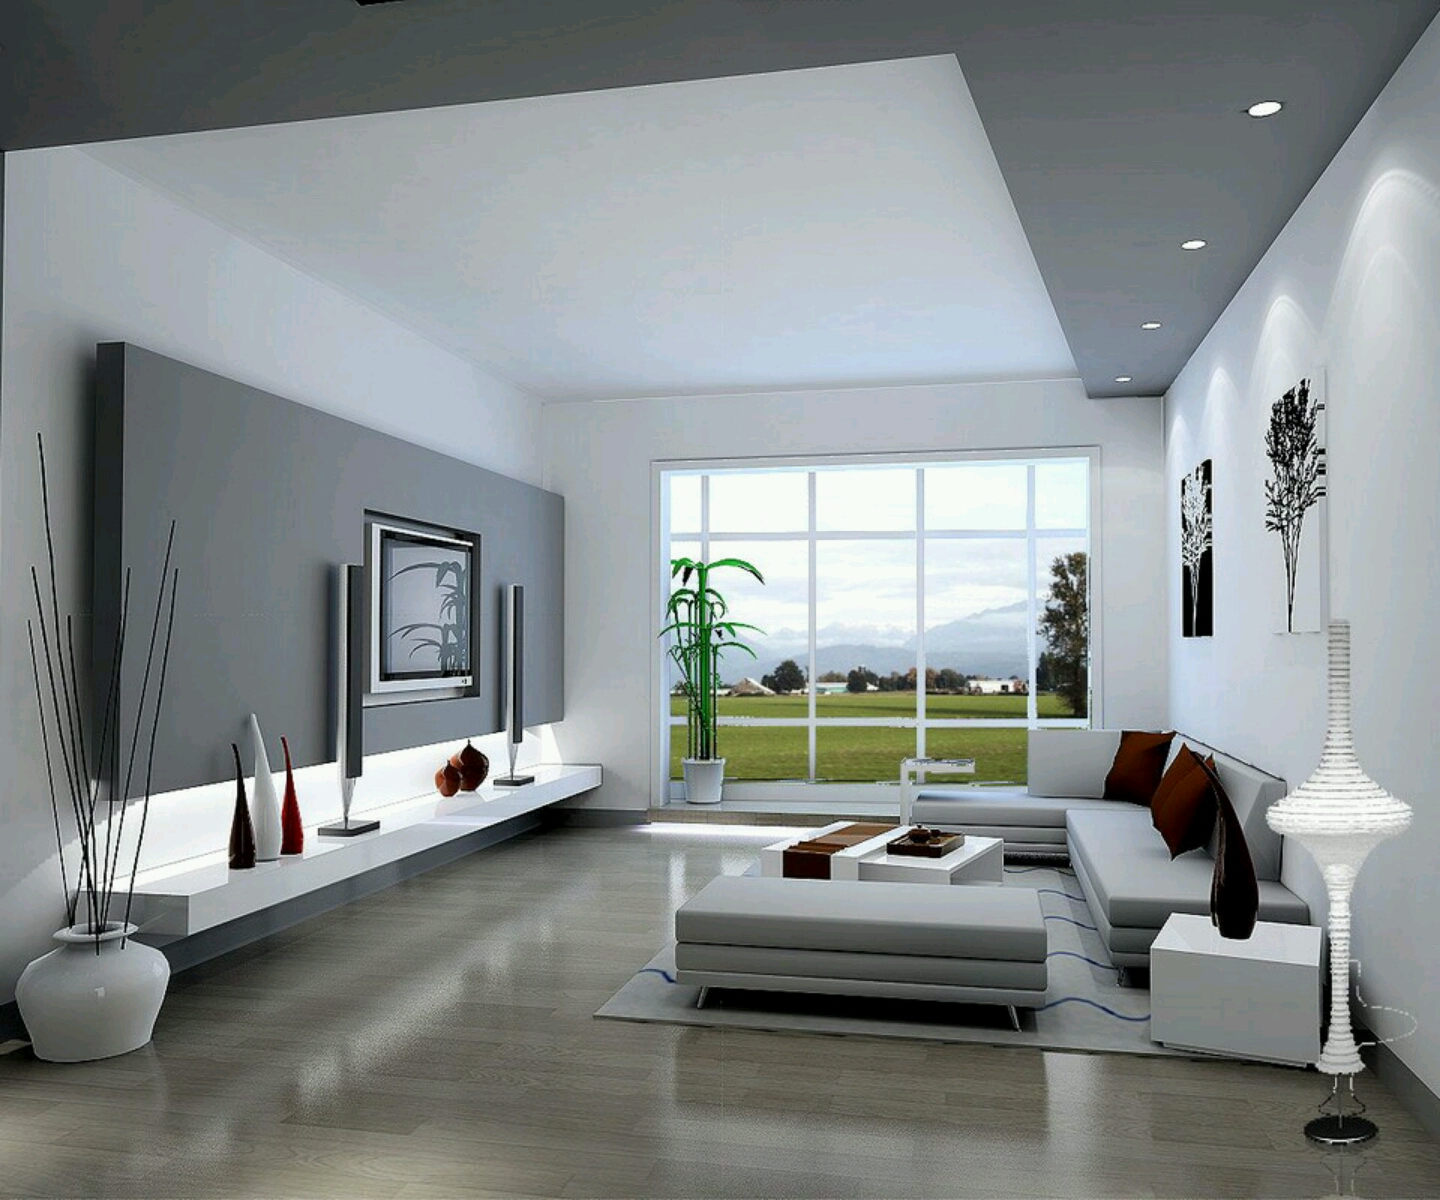 Remarkable Modern Living Room Interior Design Ideas 1440 x 1200 · 997 kB · jpeg